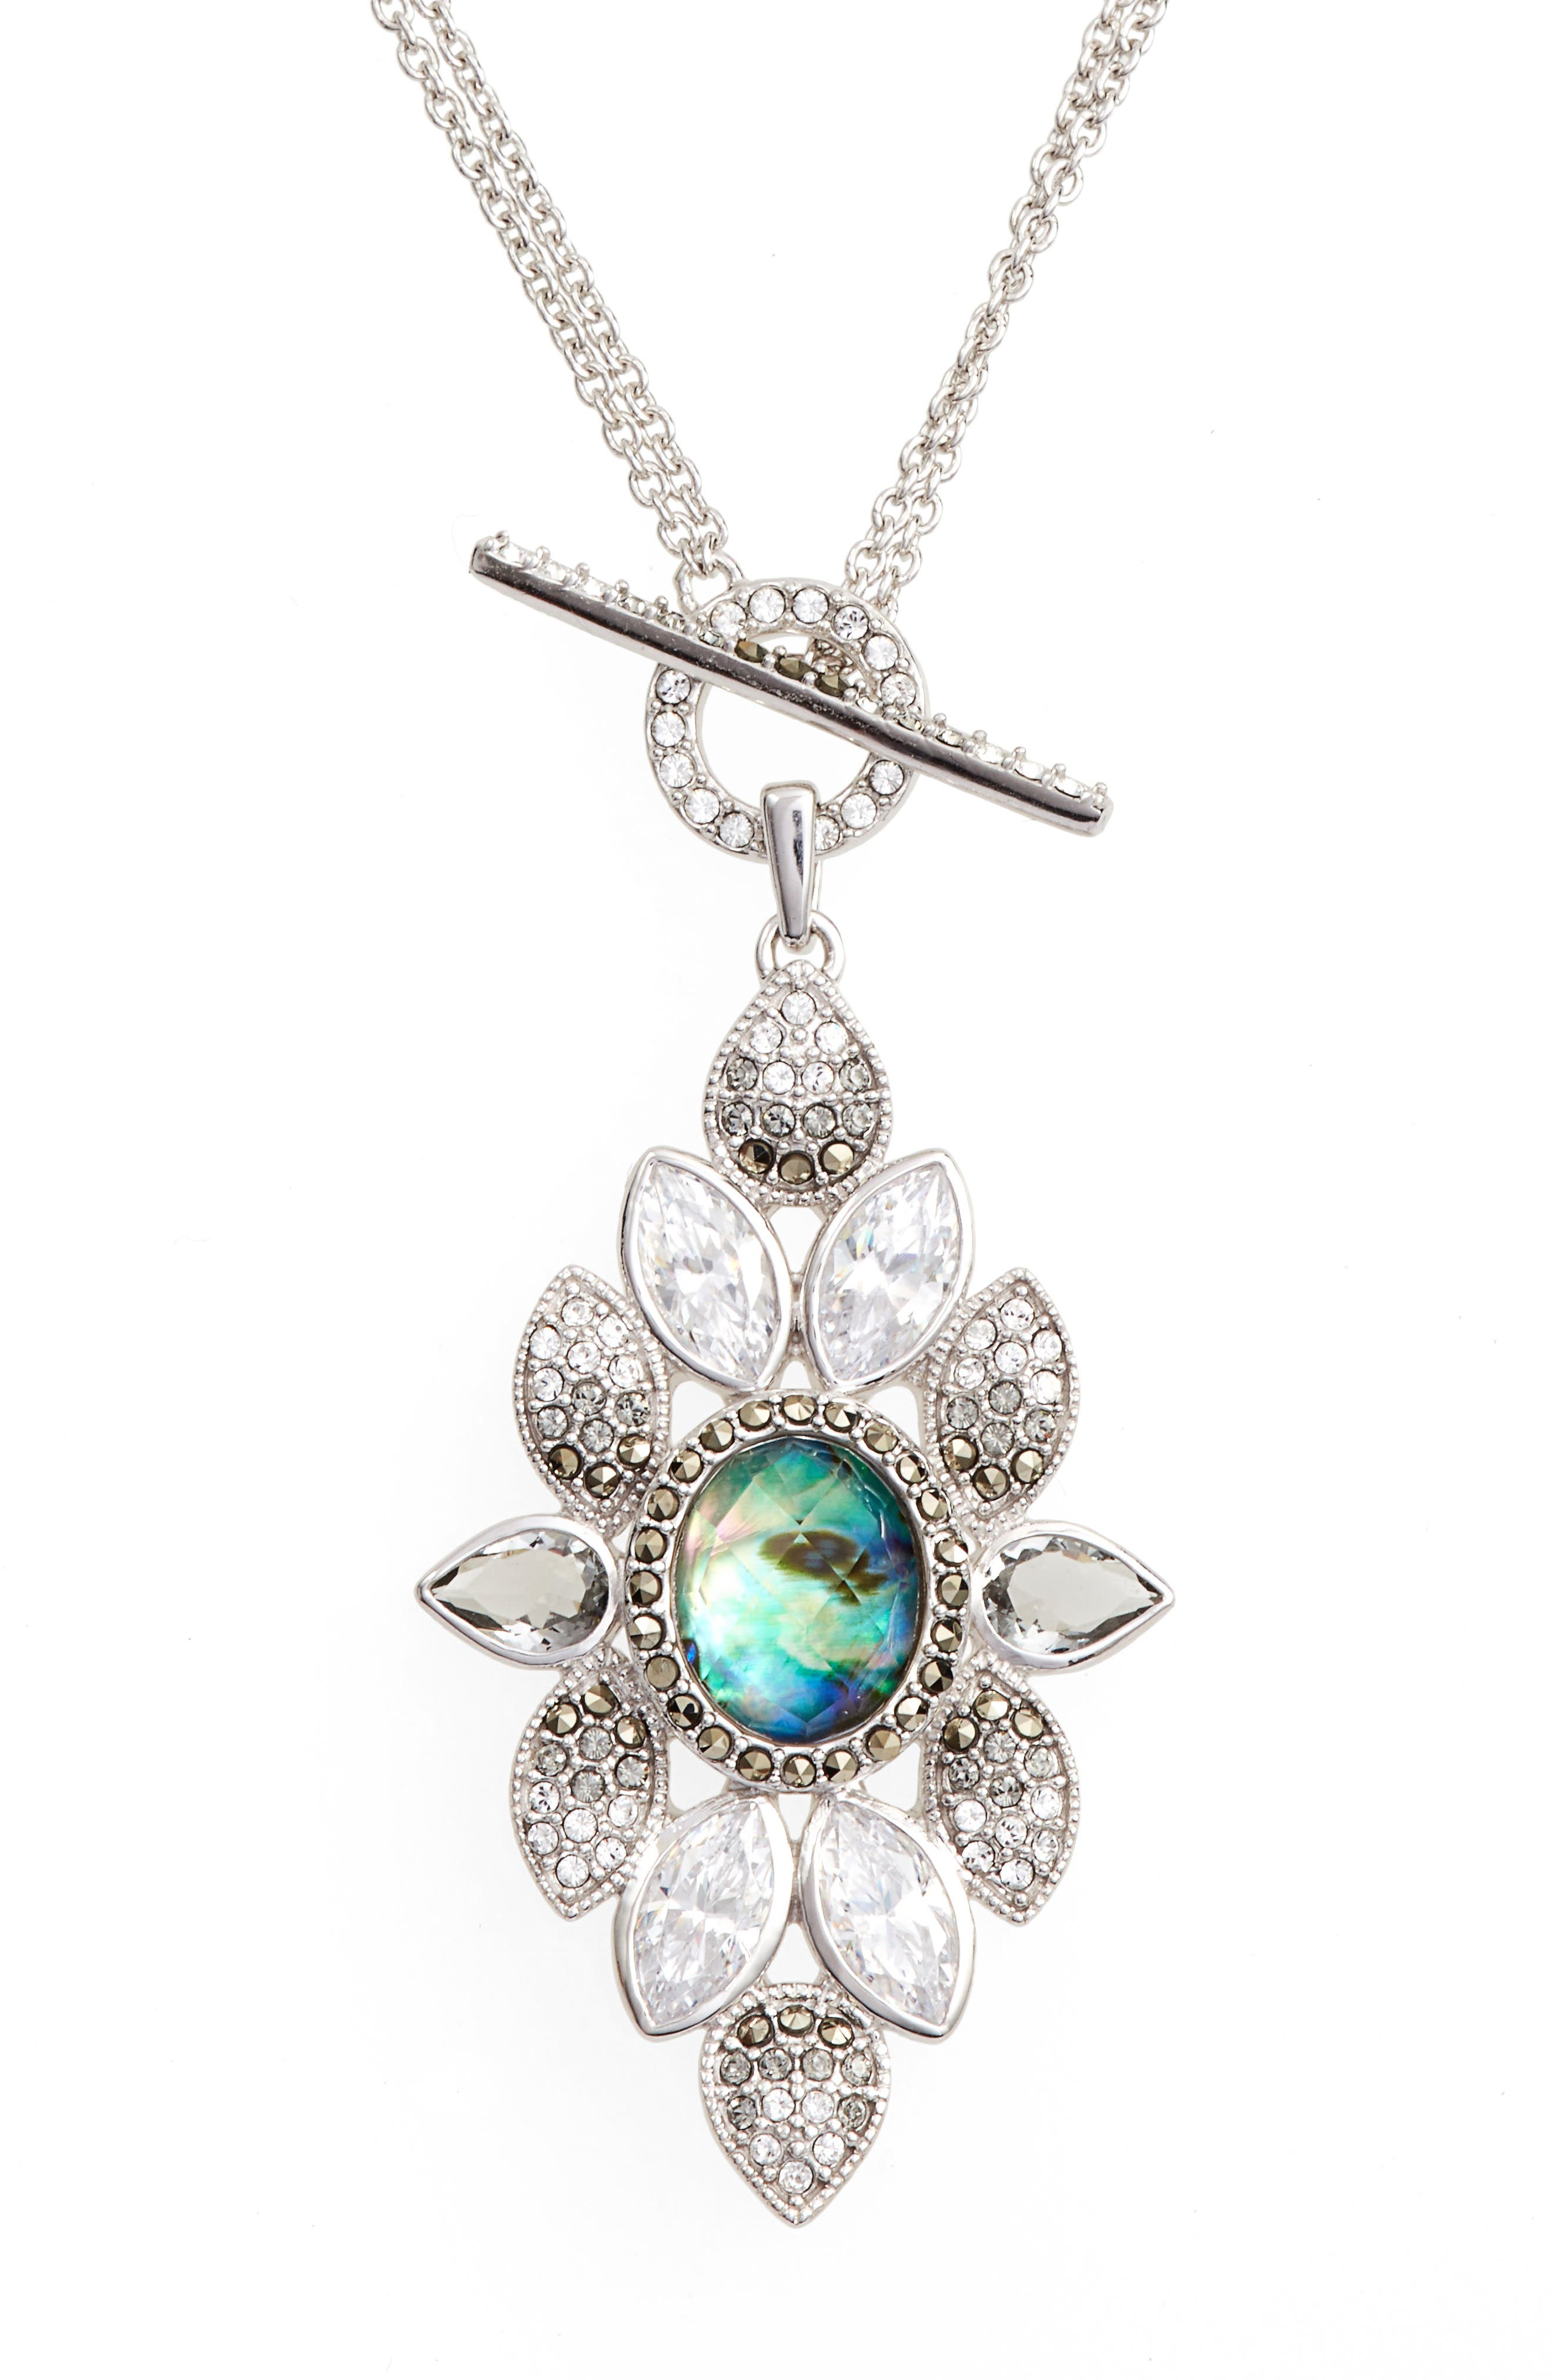 Crystal Pendant Necklace,                             Alternate thumbnail 2, color,                             Abalone/ Silver